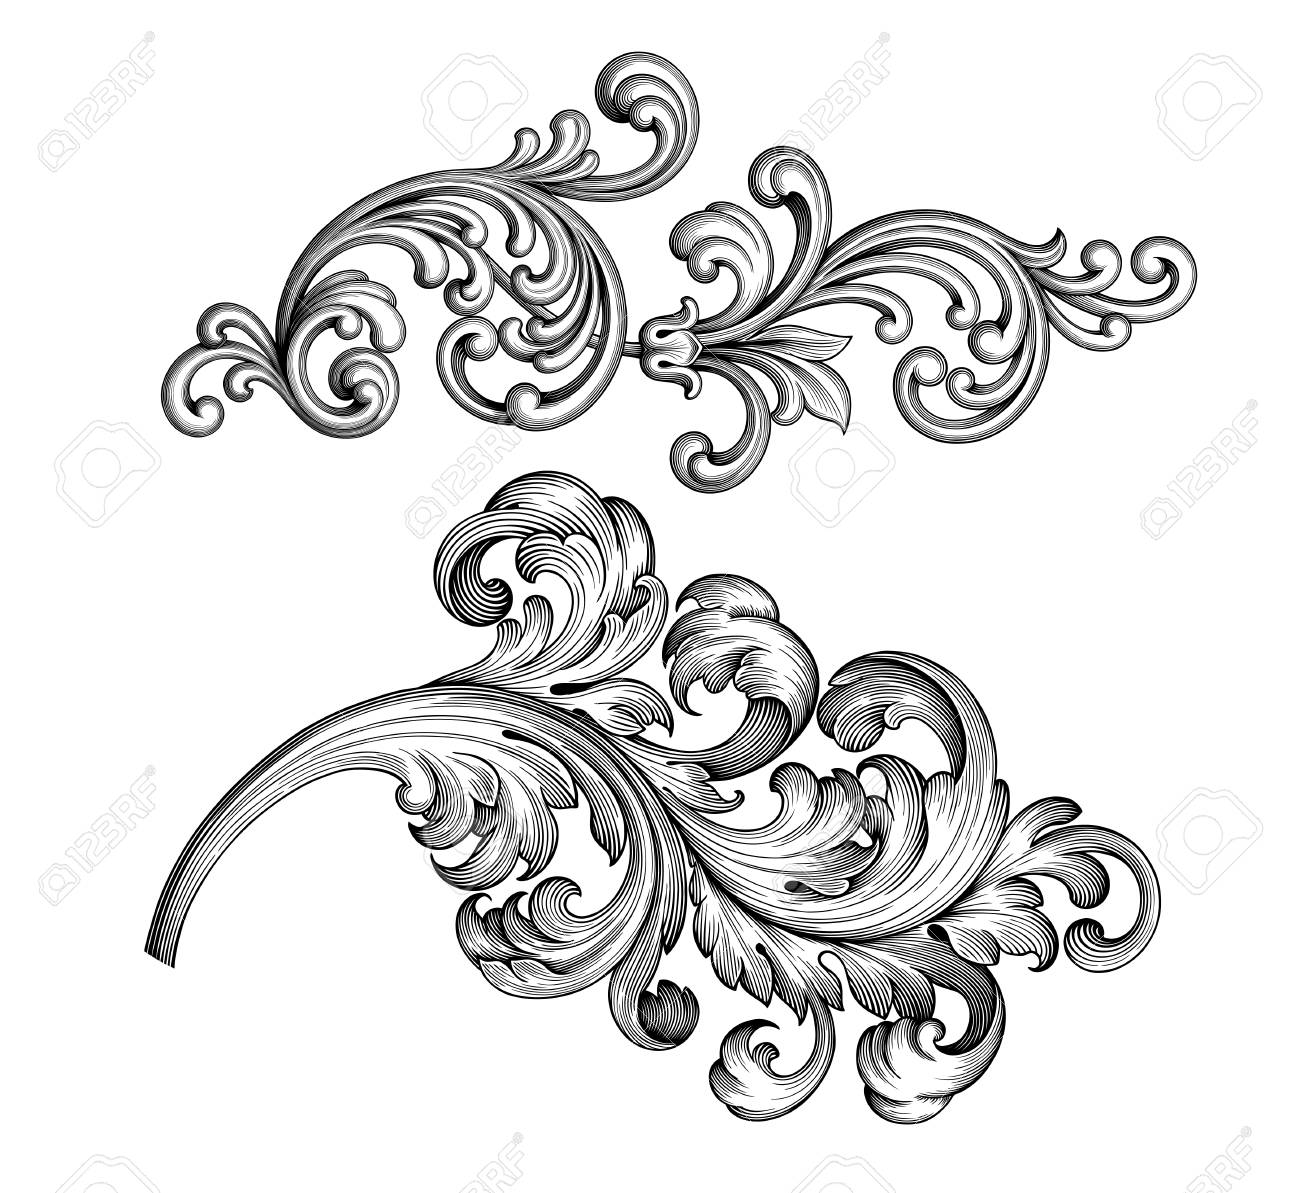 vintage frame tattoo designs. Vector - Vintage Baroque Victorian Frame Border Tattoo Floral Ornament Leaf Scroll Engraved Retro Flower Pattern Decorative Design Black And White Designs T